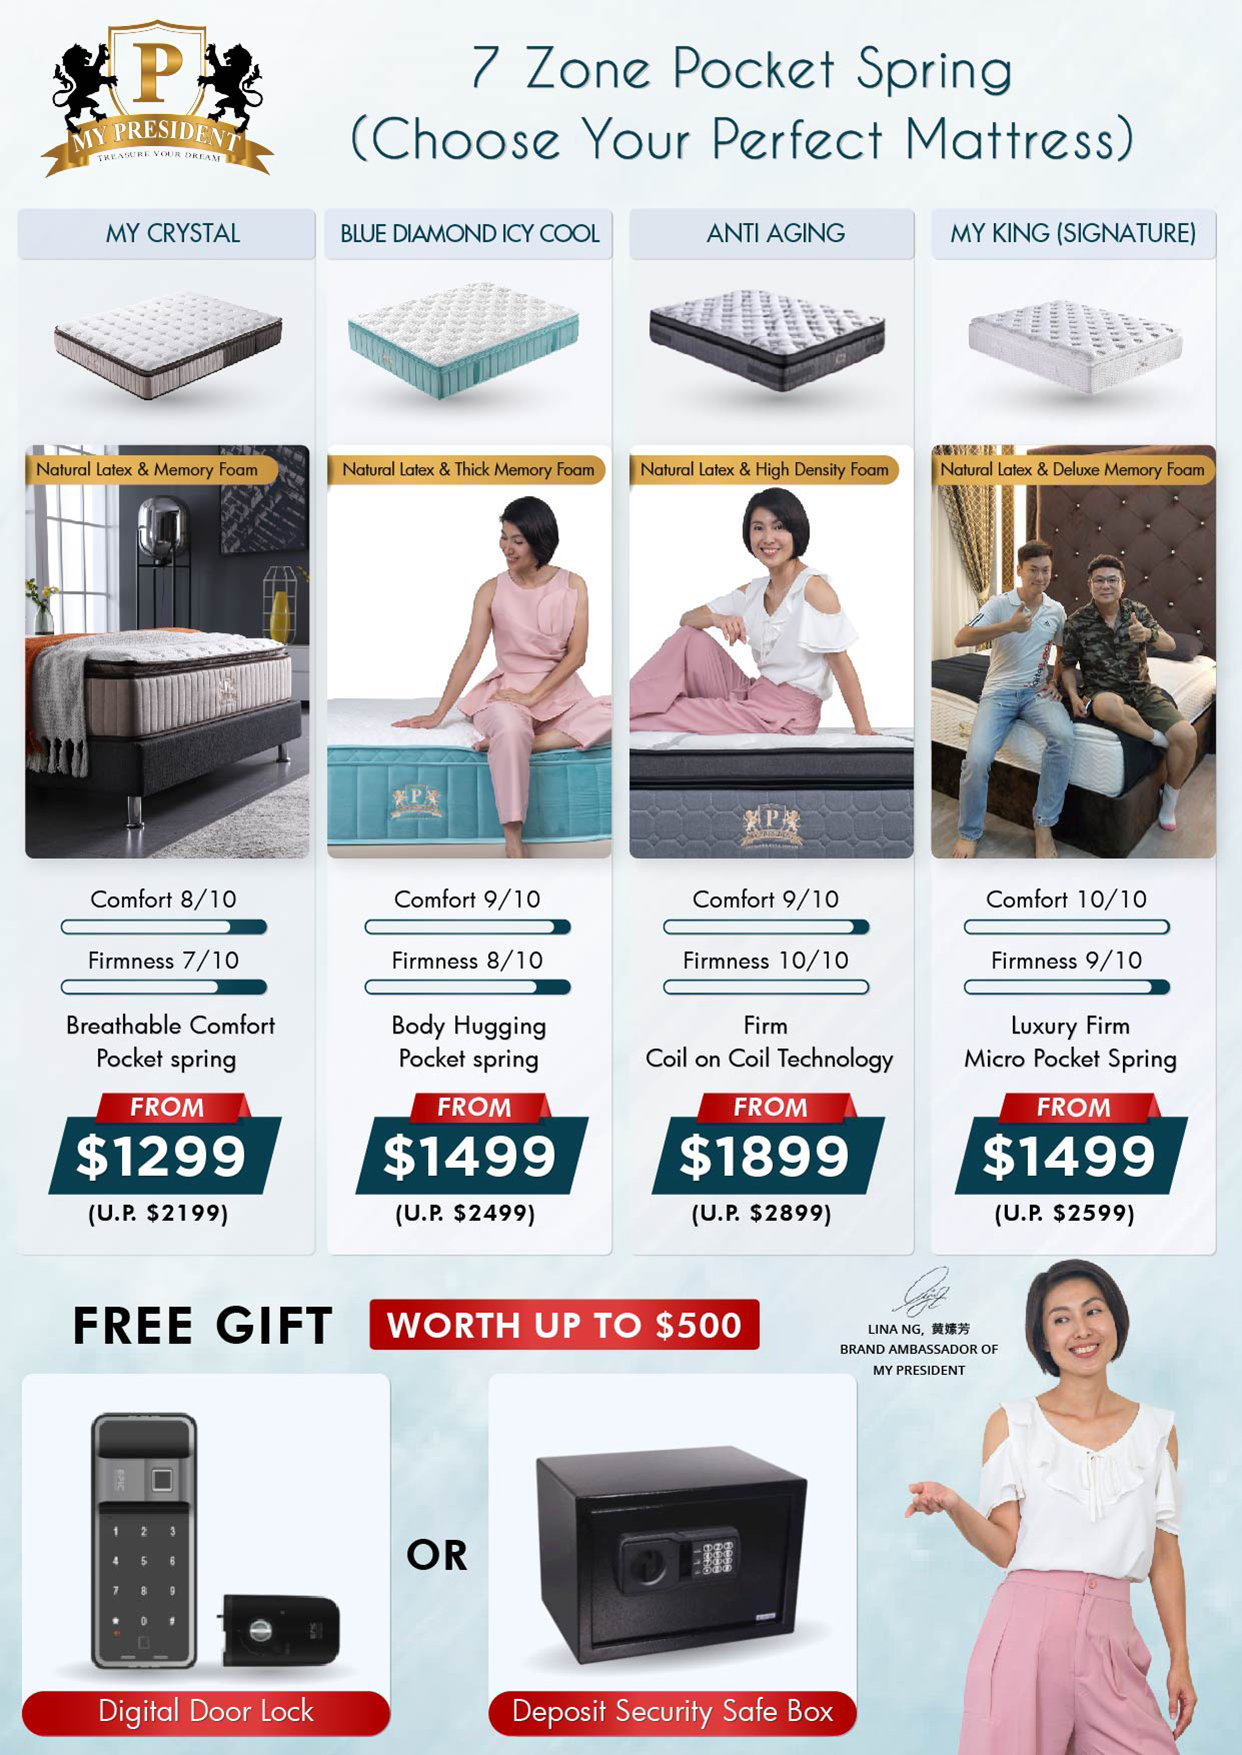 My President Mattress_Choose Your Perfect Mattress